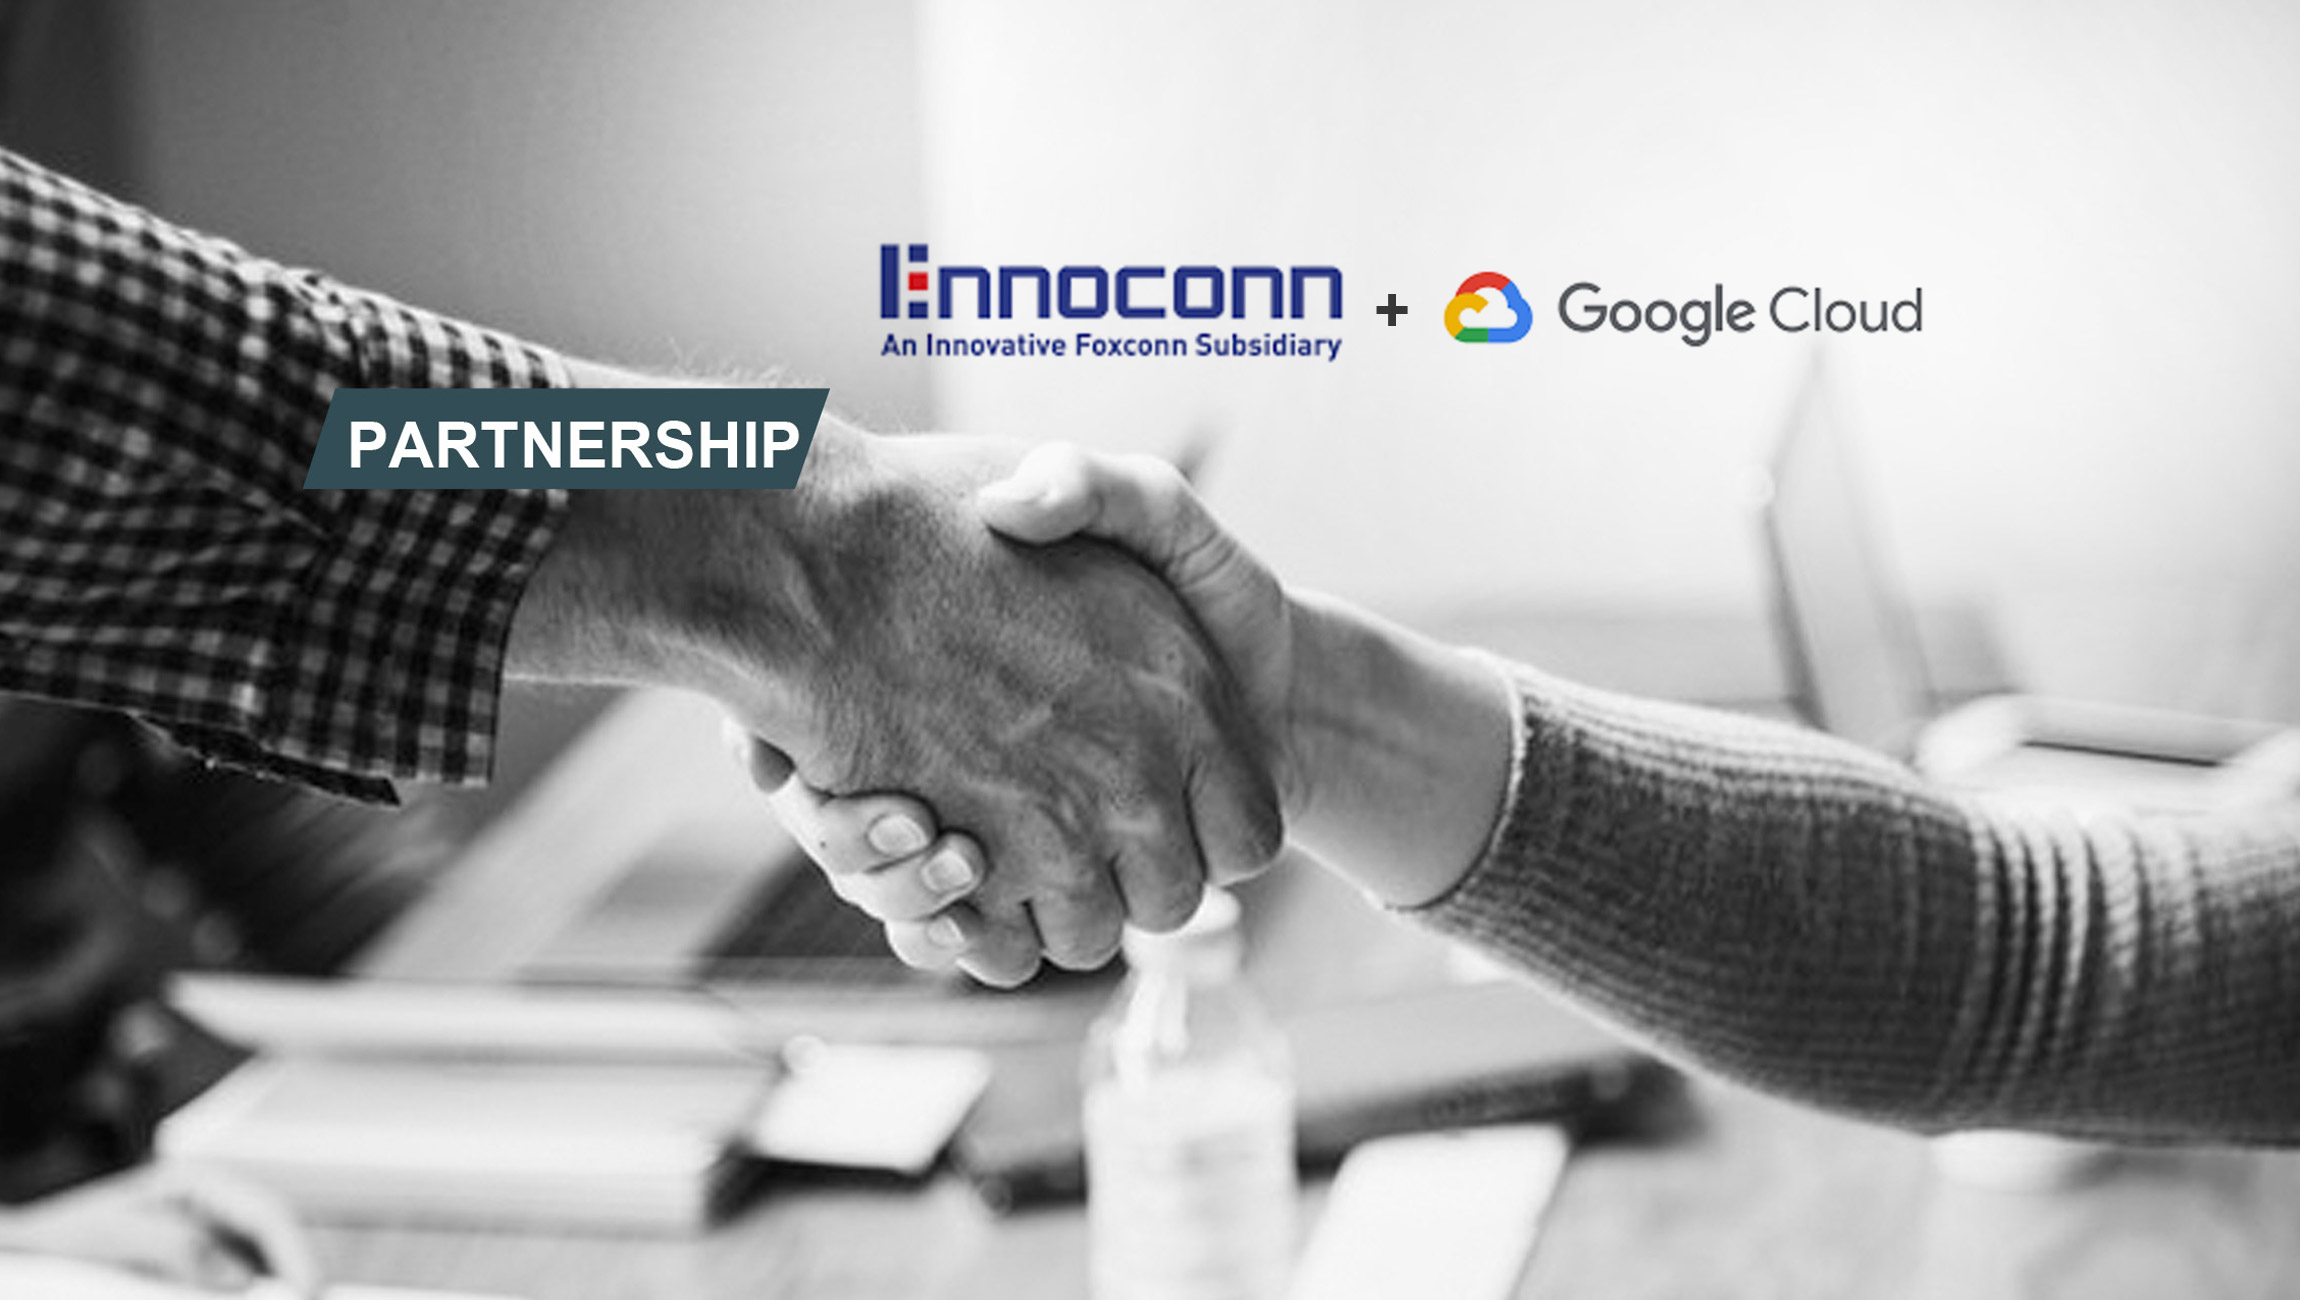 Ennoconn-Group-and-Google-Cloud-Partner-to-Digitally-Transform-its-Global-Open-AI-of-Things-Cloud-Platform